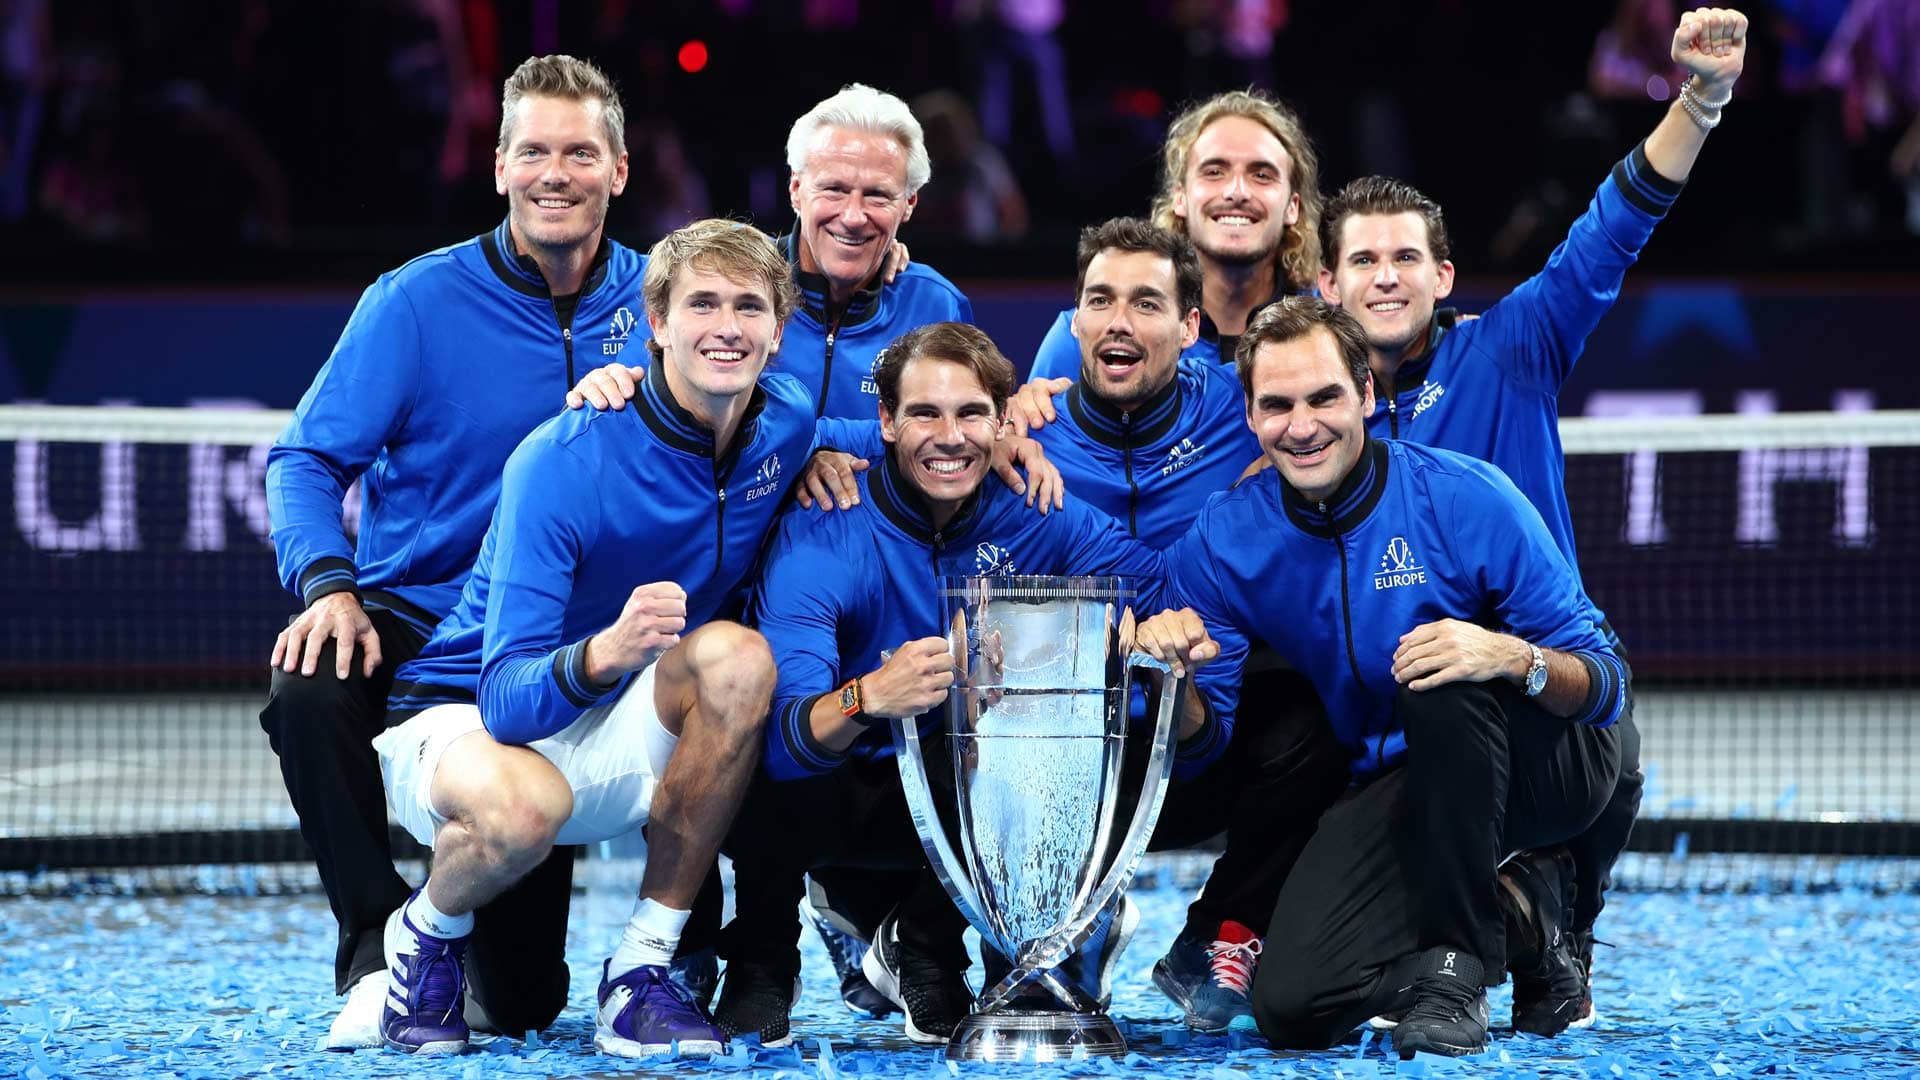 Team Europe celebrates winning 2019 Laver Cup